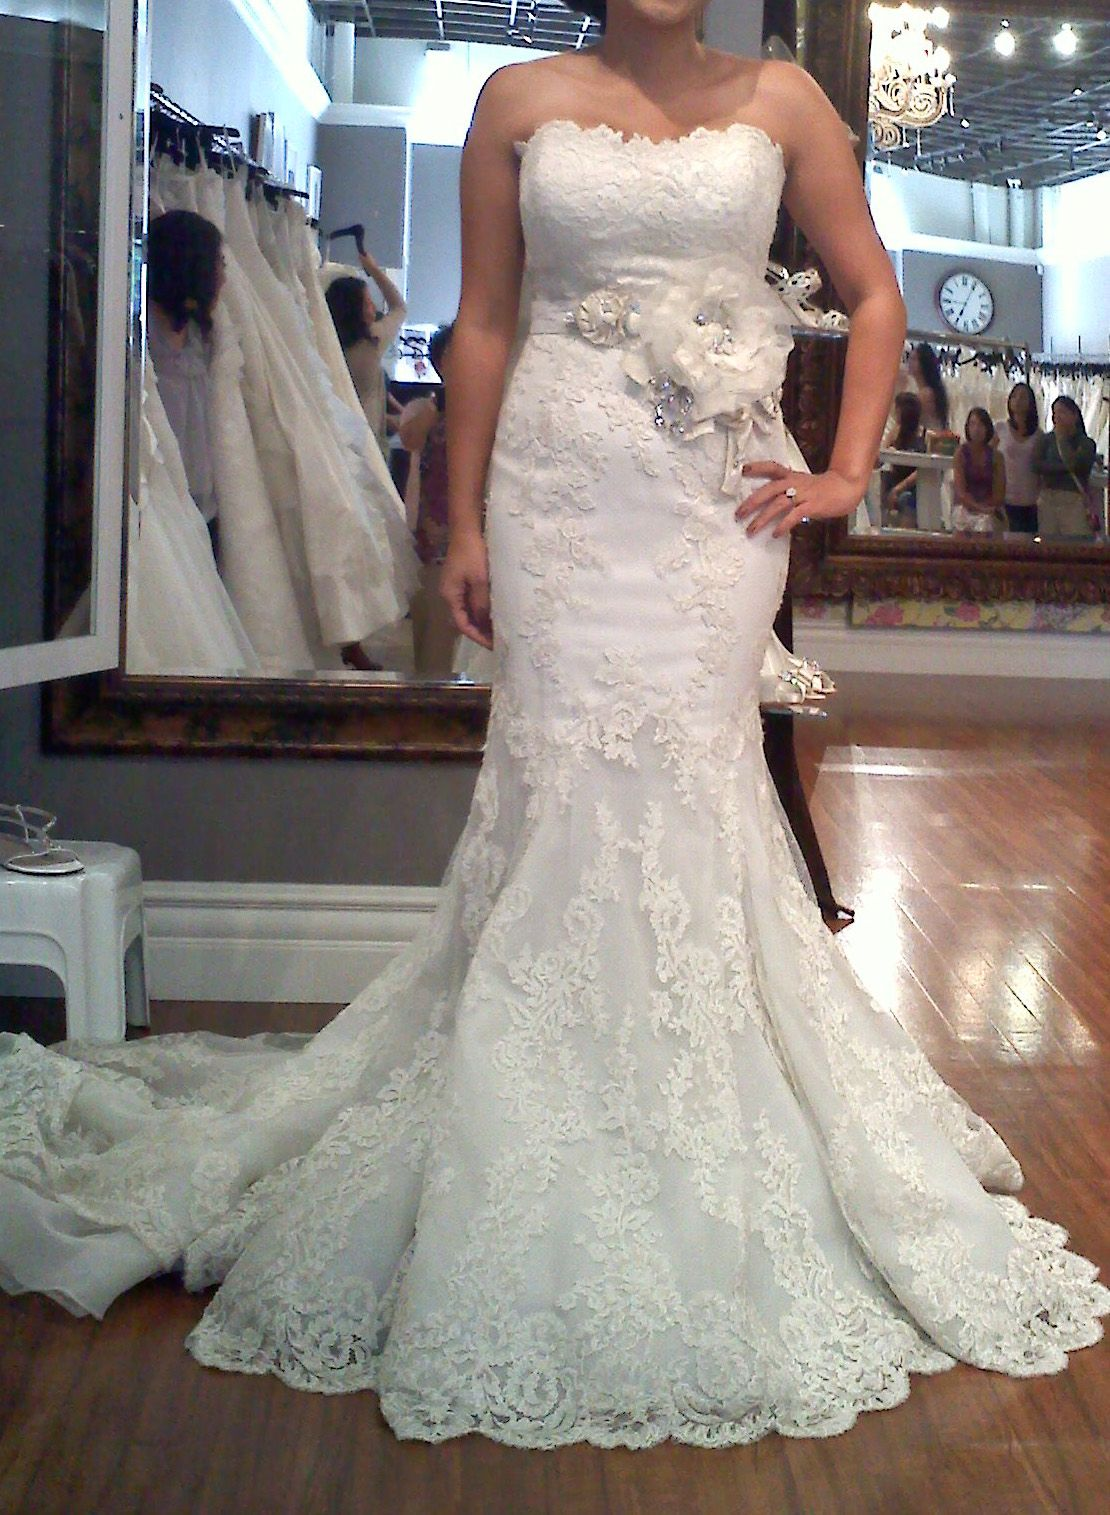 Me in the Enzoani Dakota Dress w/ the Diana Sash. Runner-up dress ...